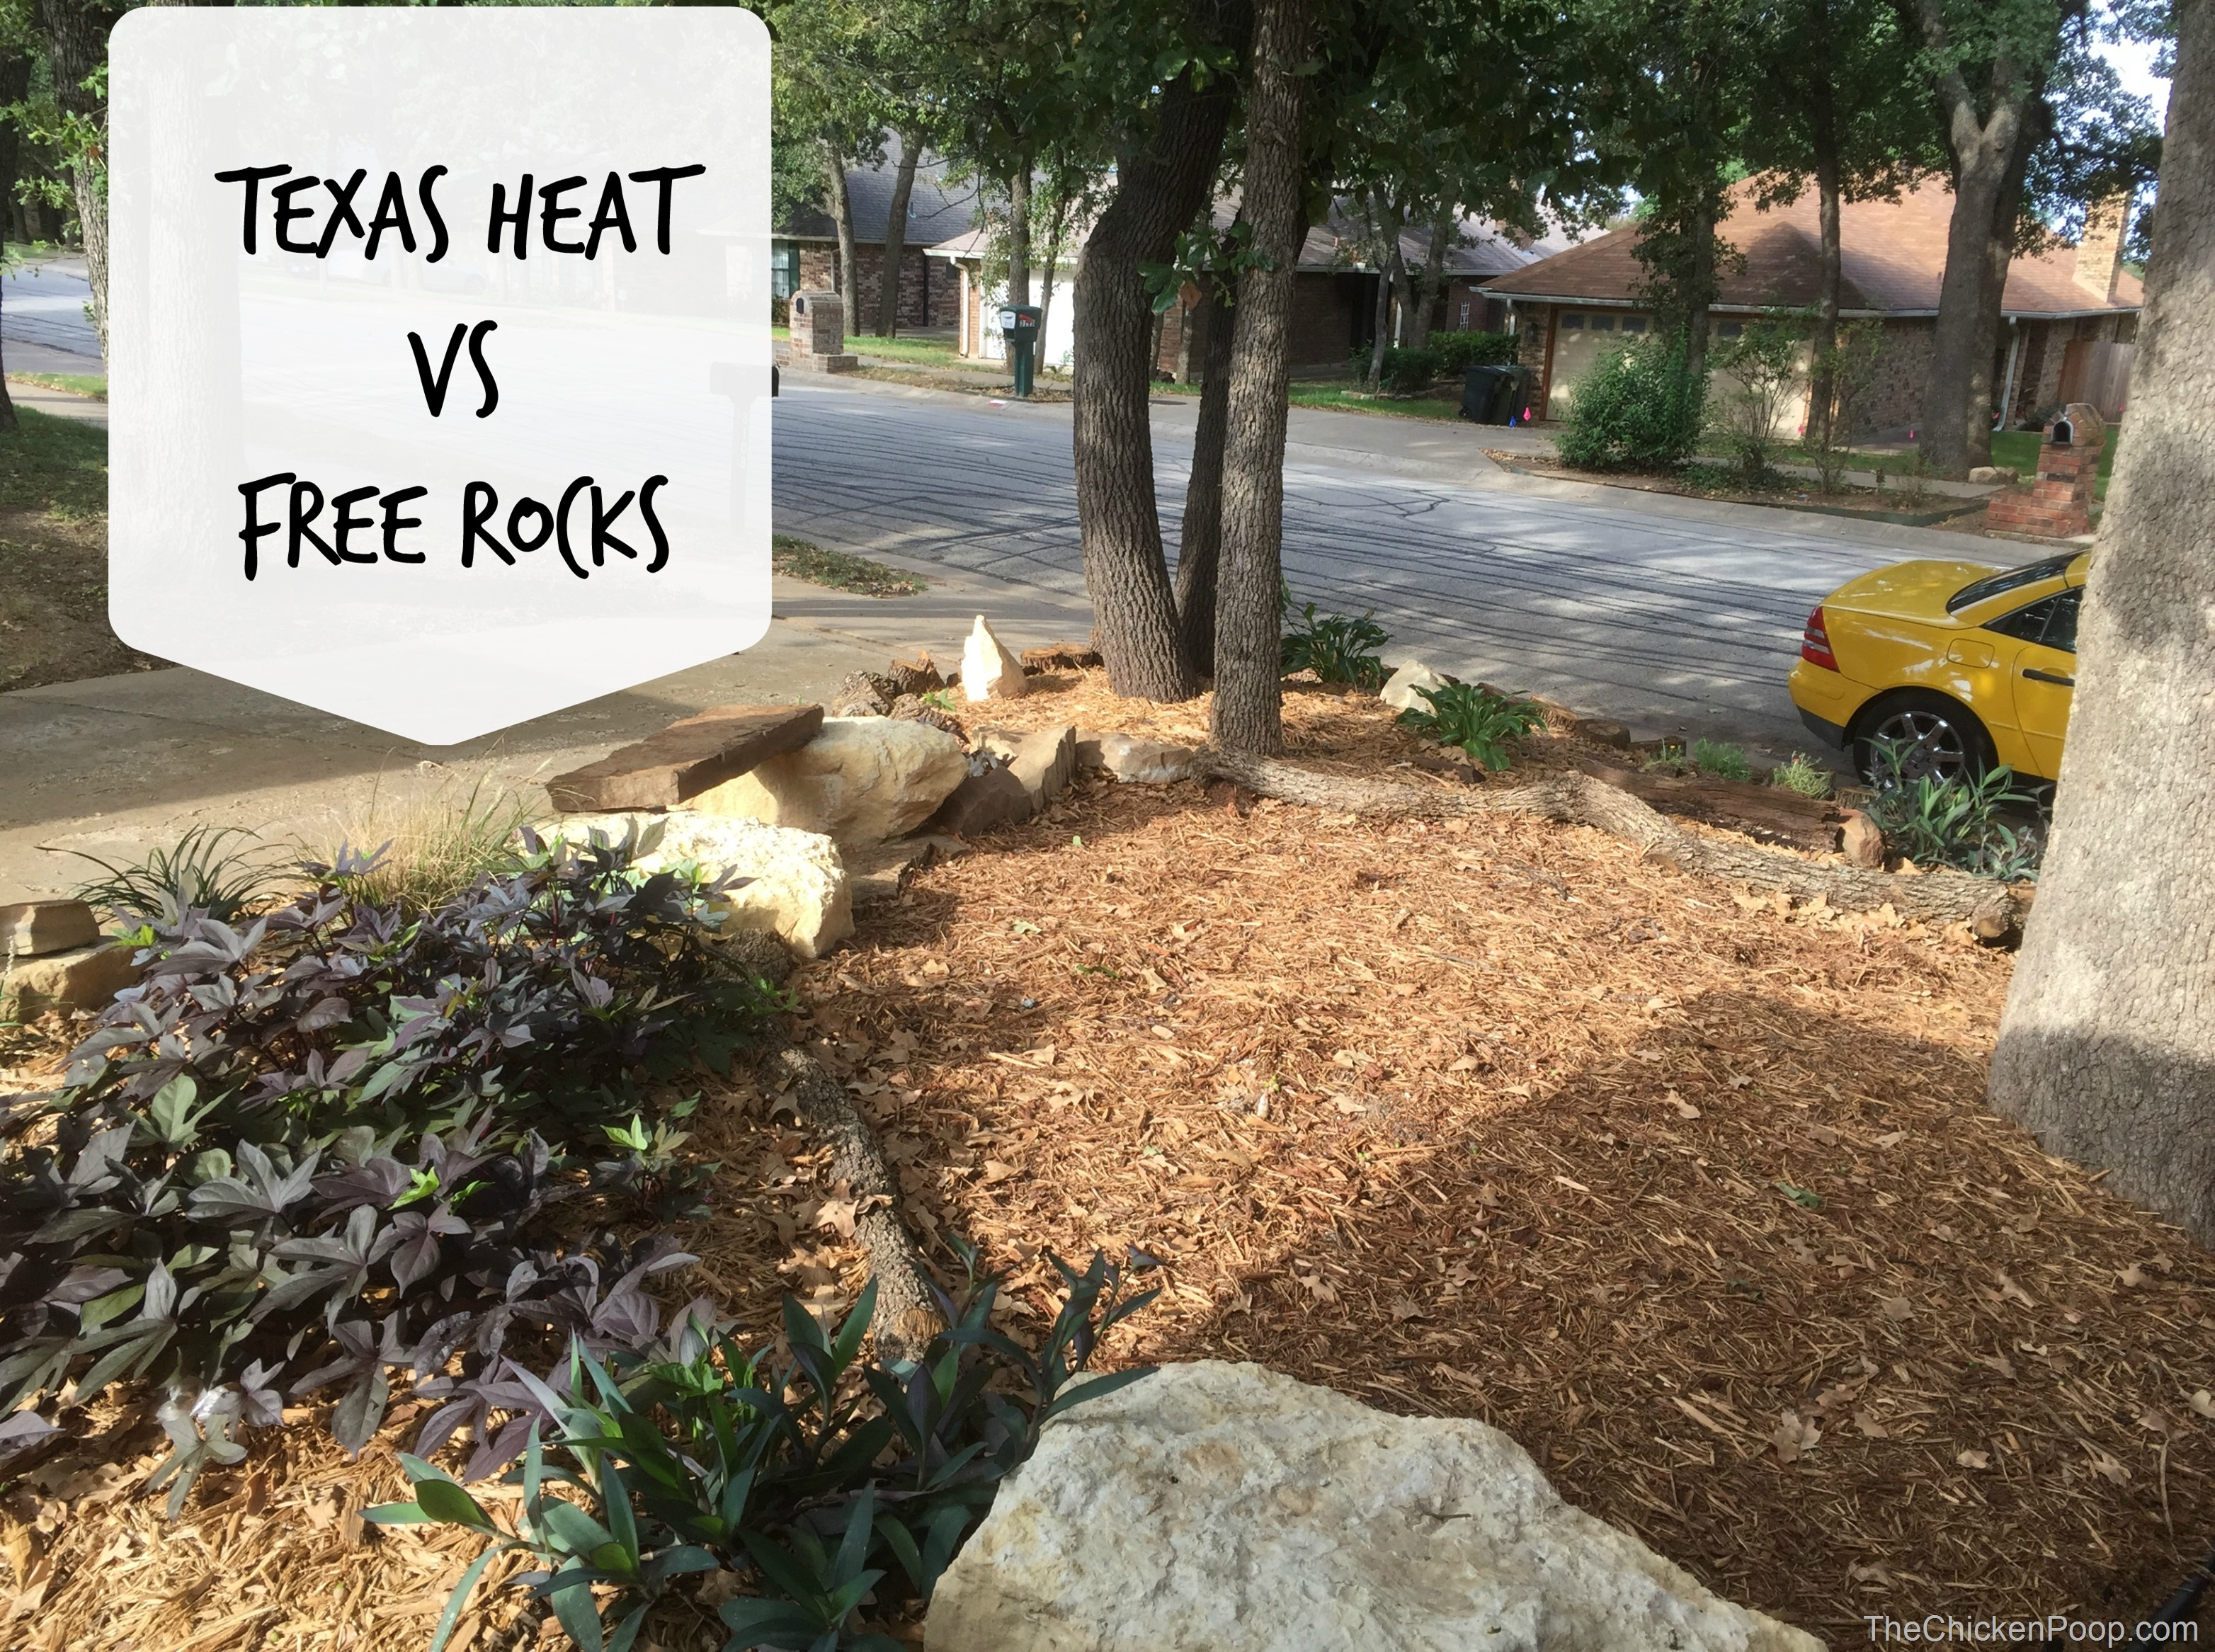 Texas Heat vs Free Rocks